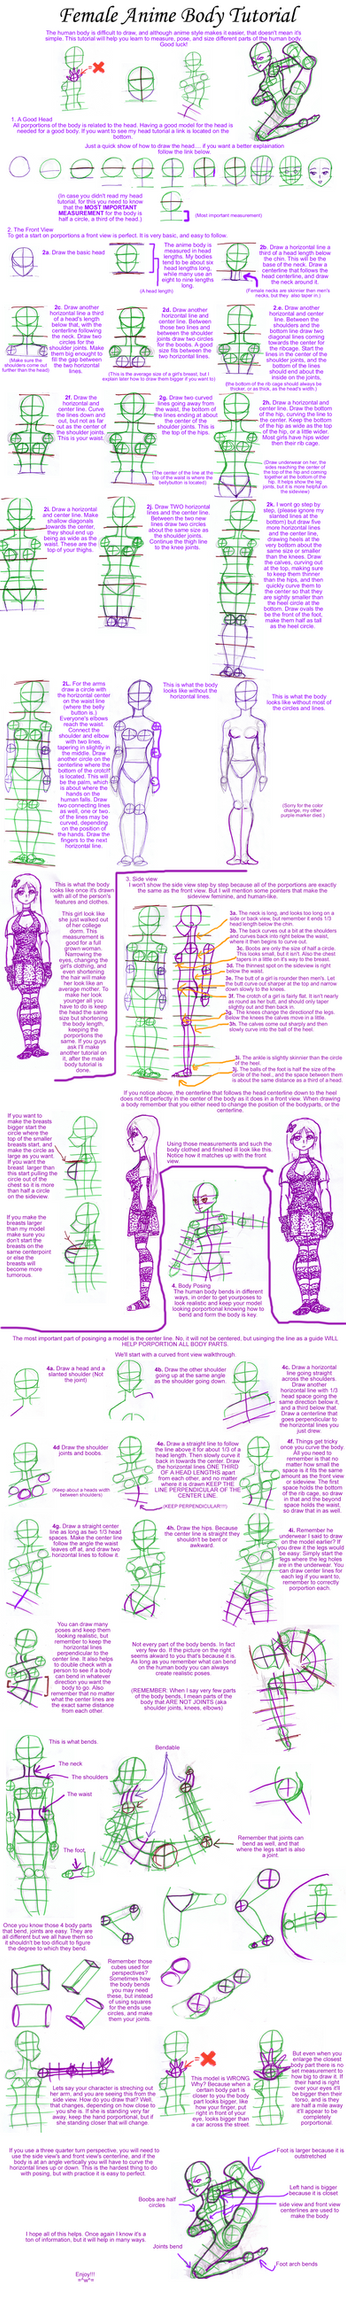 Female Anime Body Tutorial by my-star-seeker